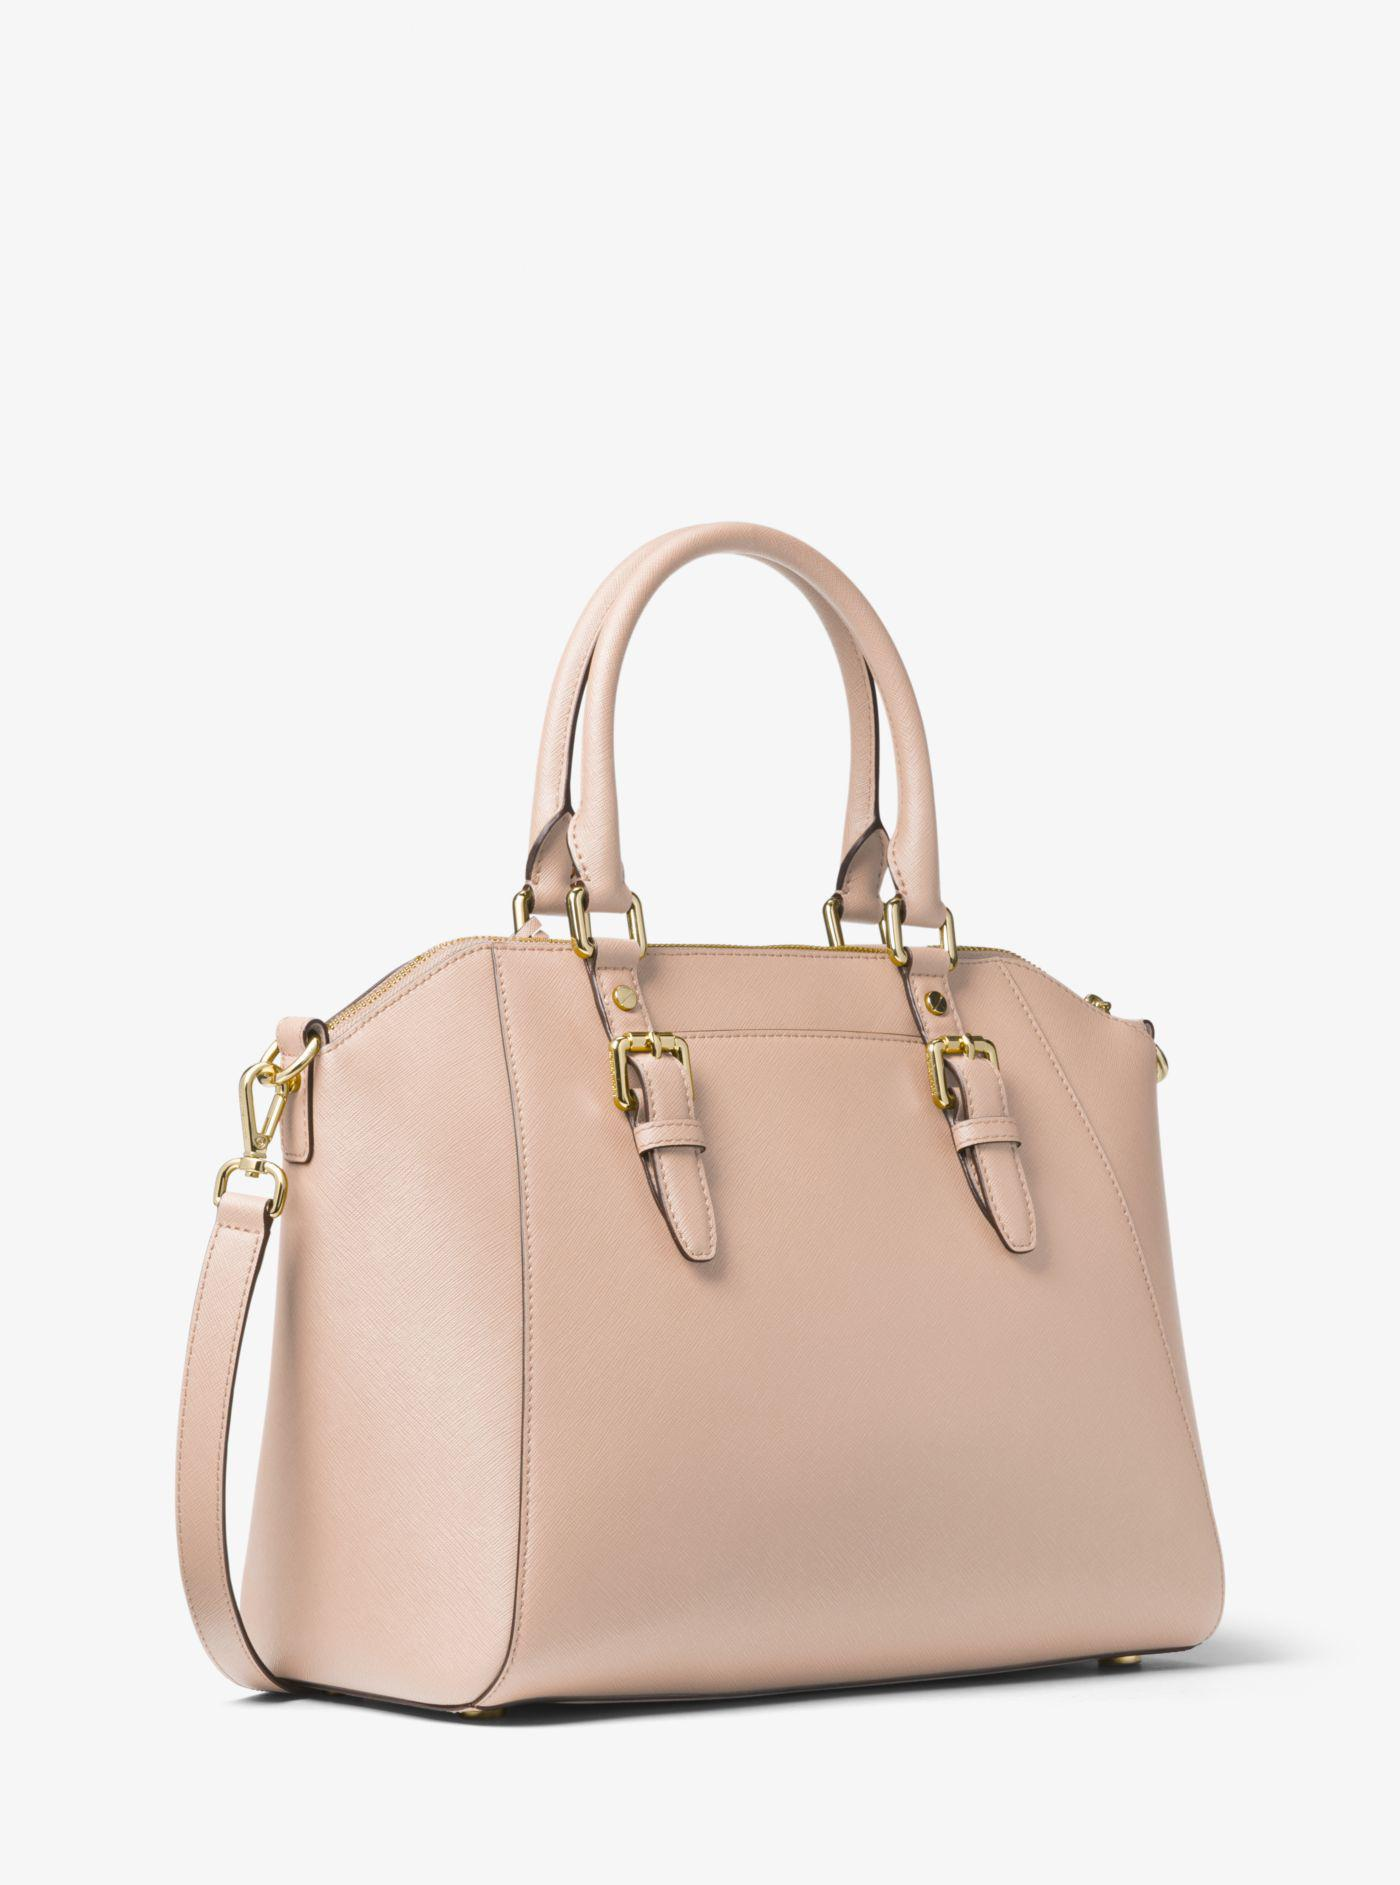 c776d18485d67 Lyst - Michael Kors Ciara Large Saffiano Leather Satchel in Pink